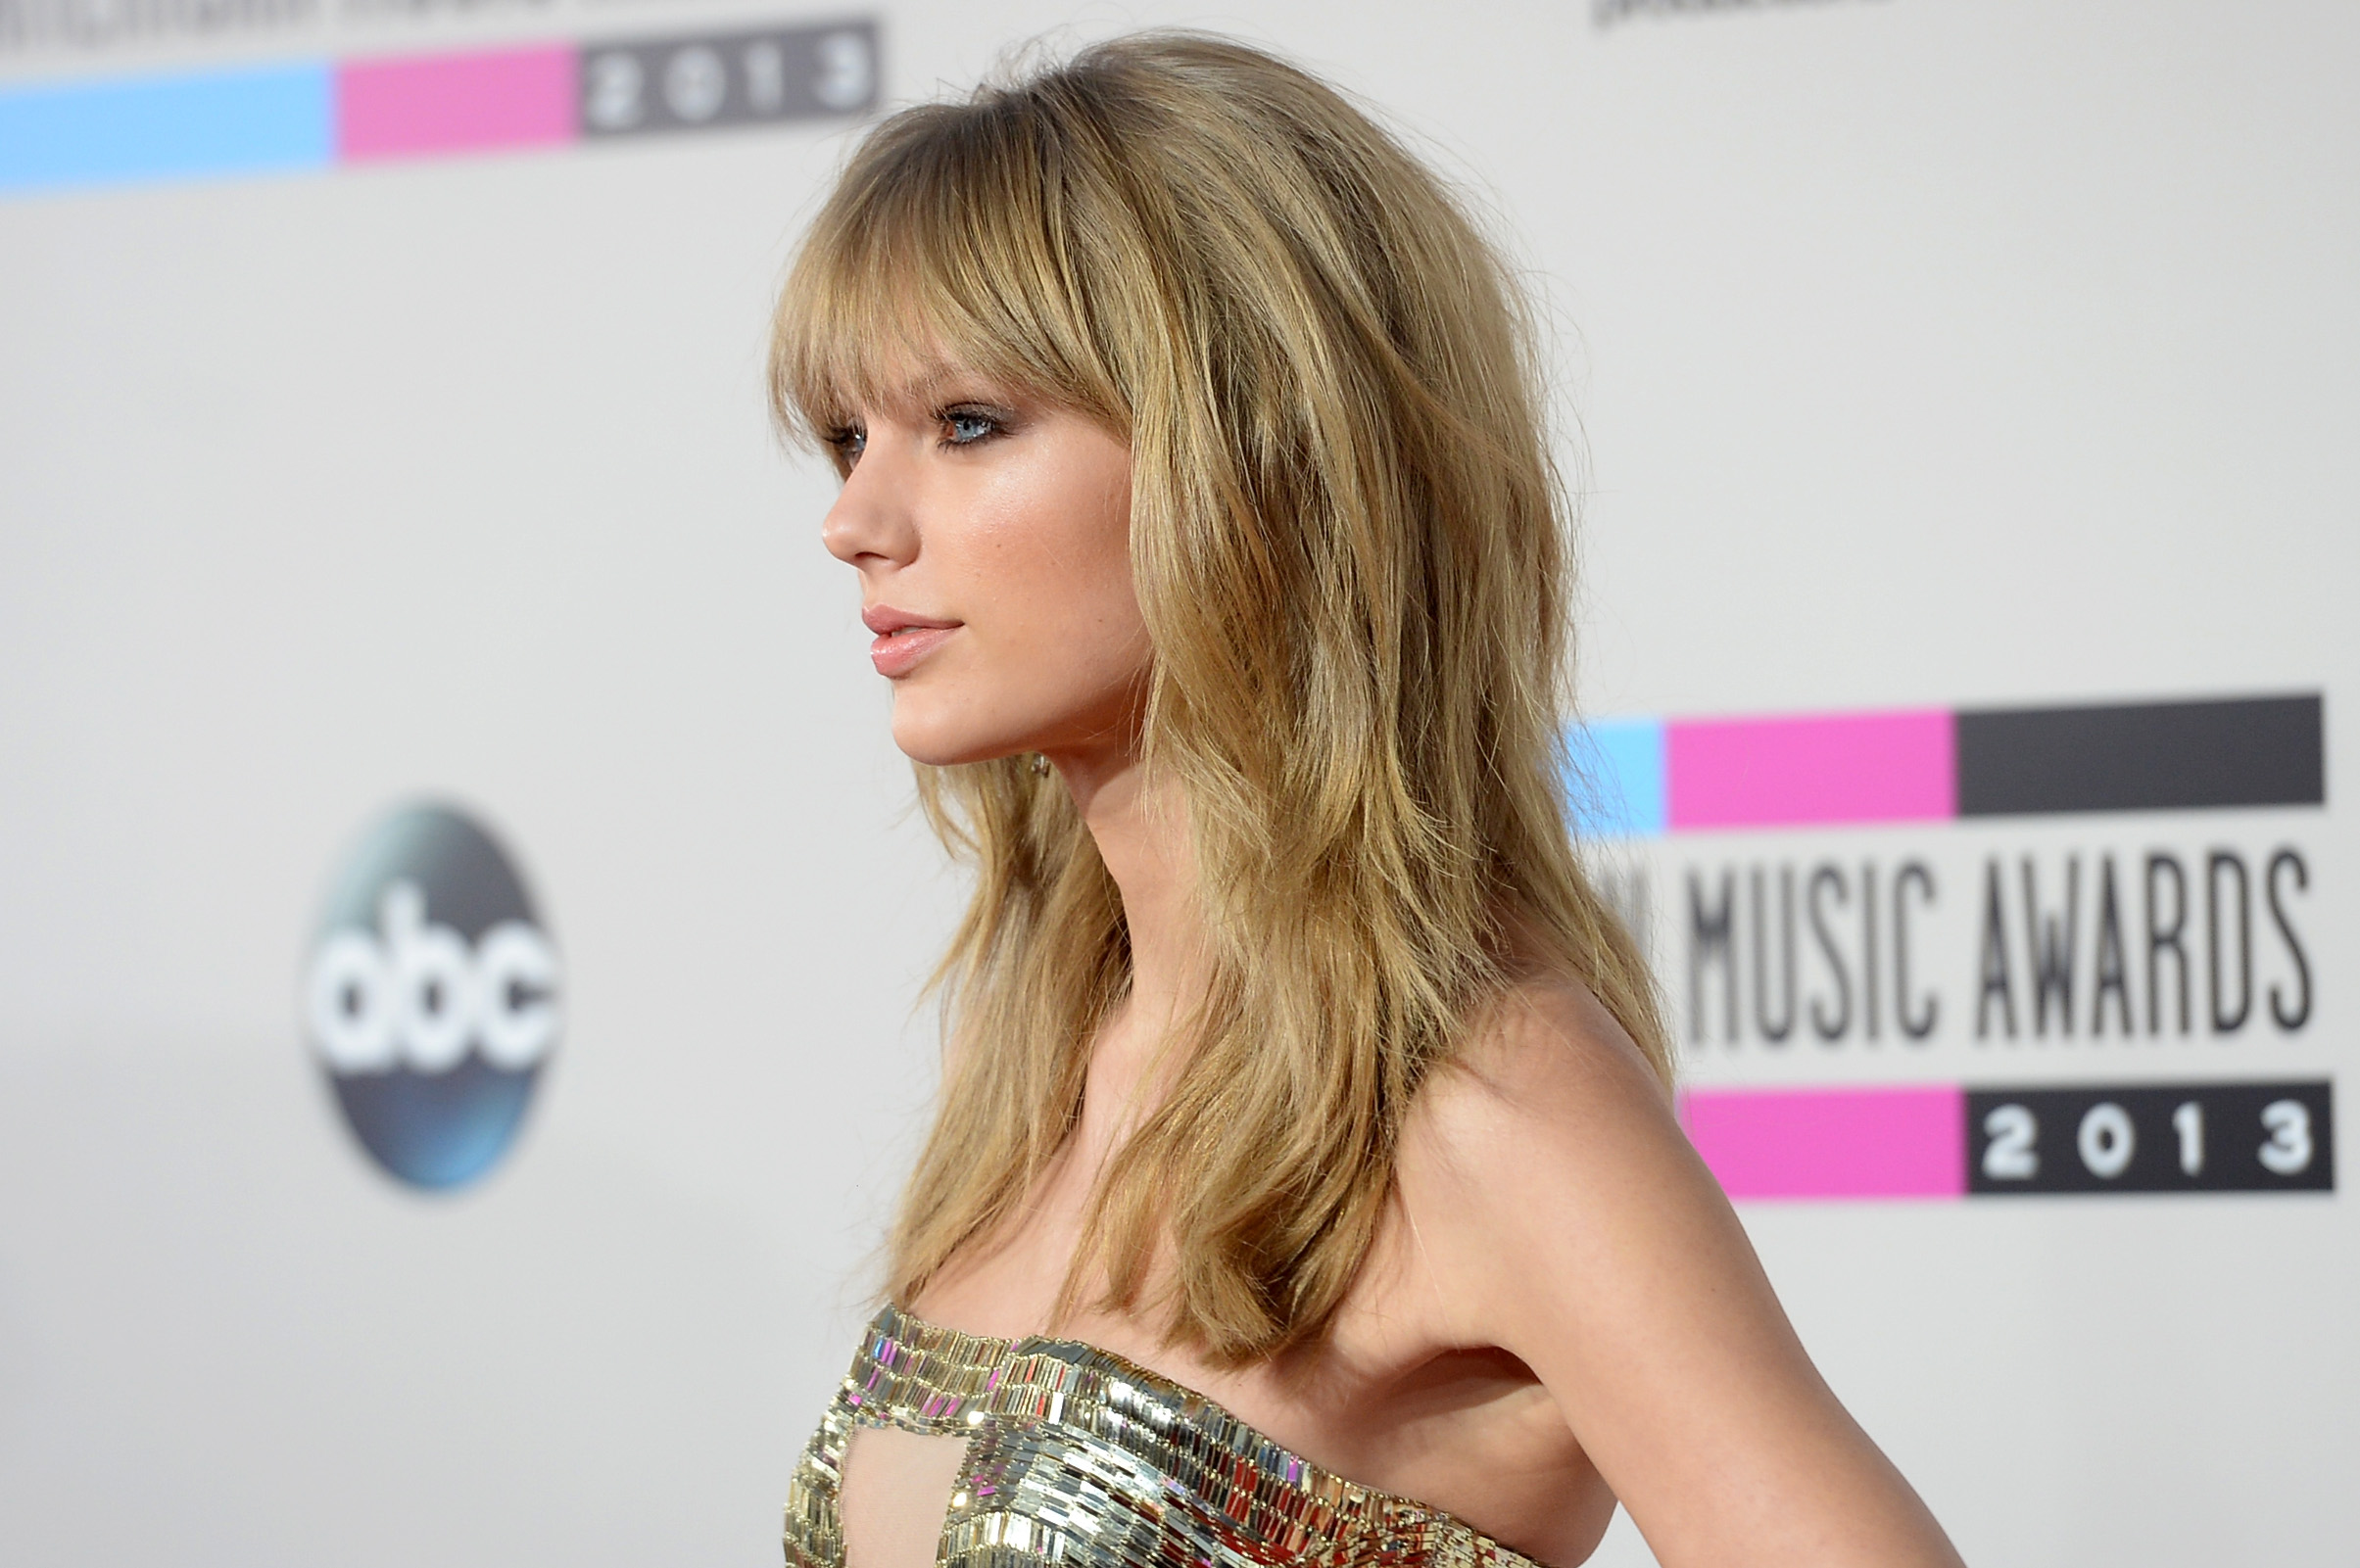 http://taylorpictures.net/albums/app/2013/americanmusicawards/013.jpg